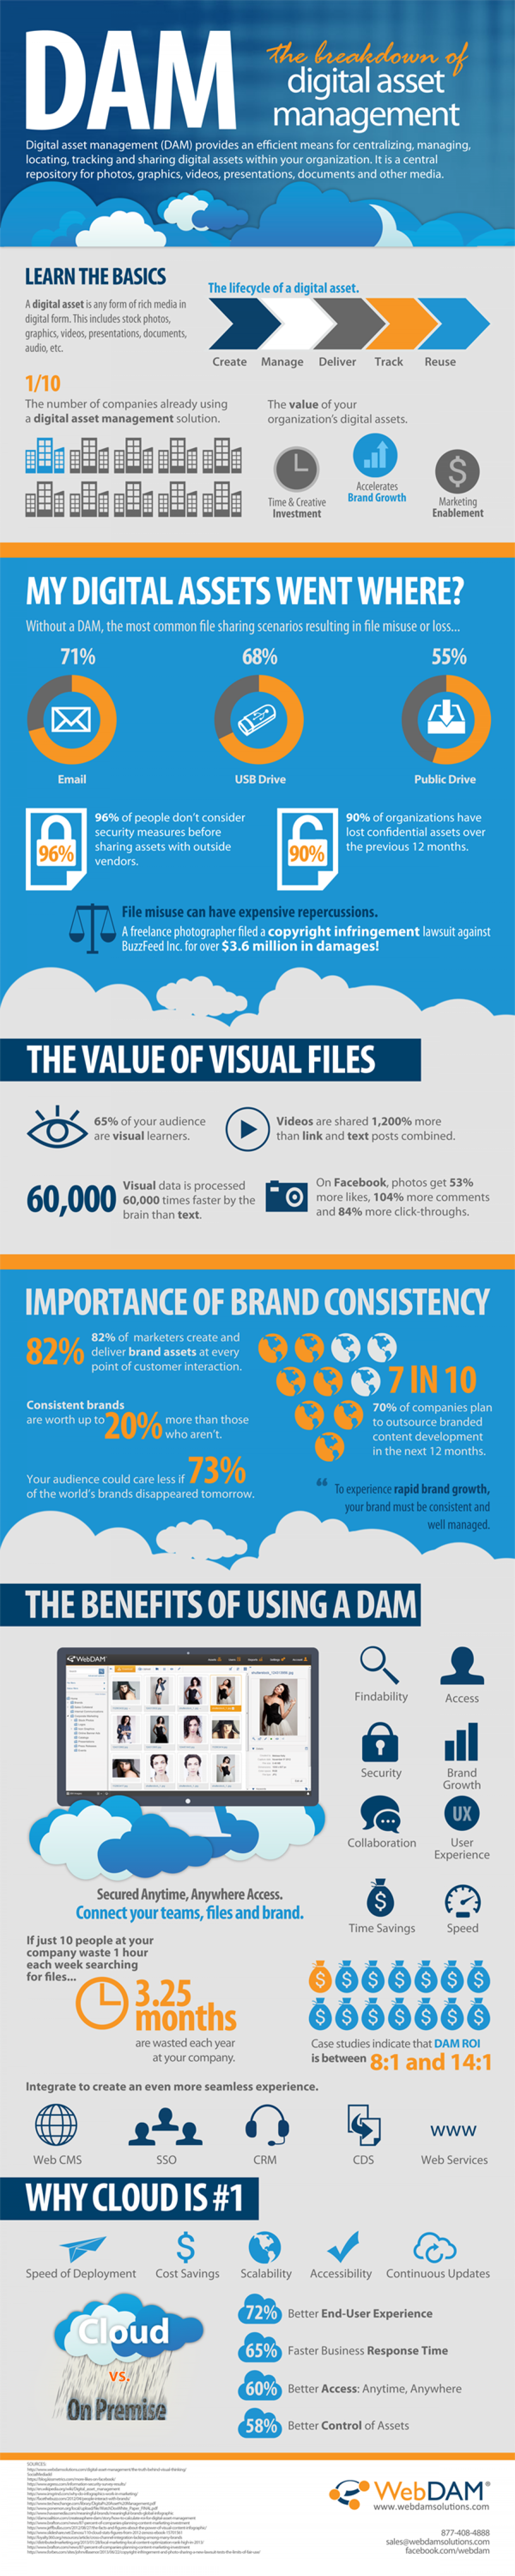 Digital Asset Management Infographic